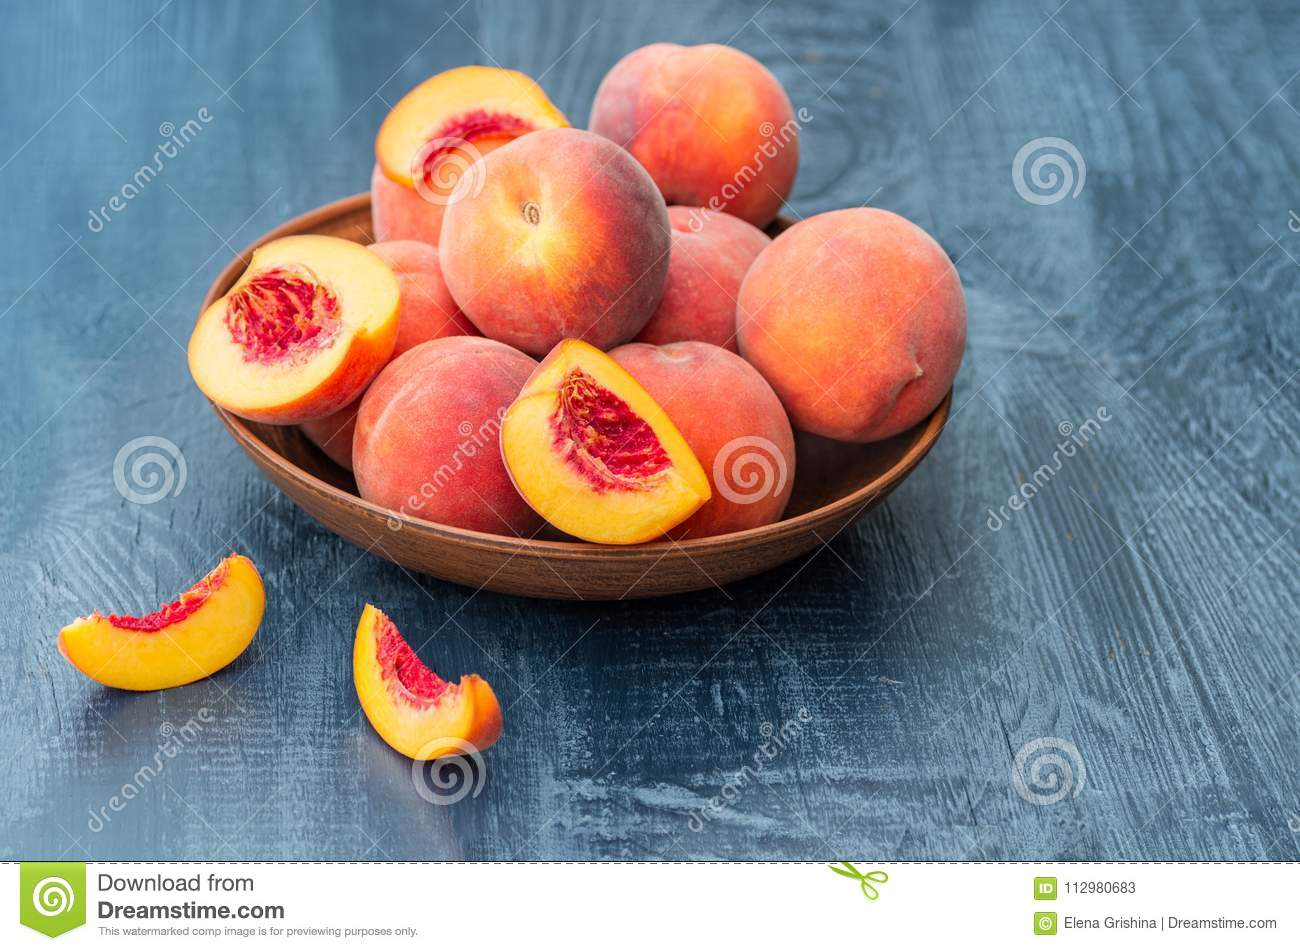 Fresh peaches on a wooden background. Close-up